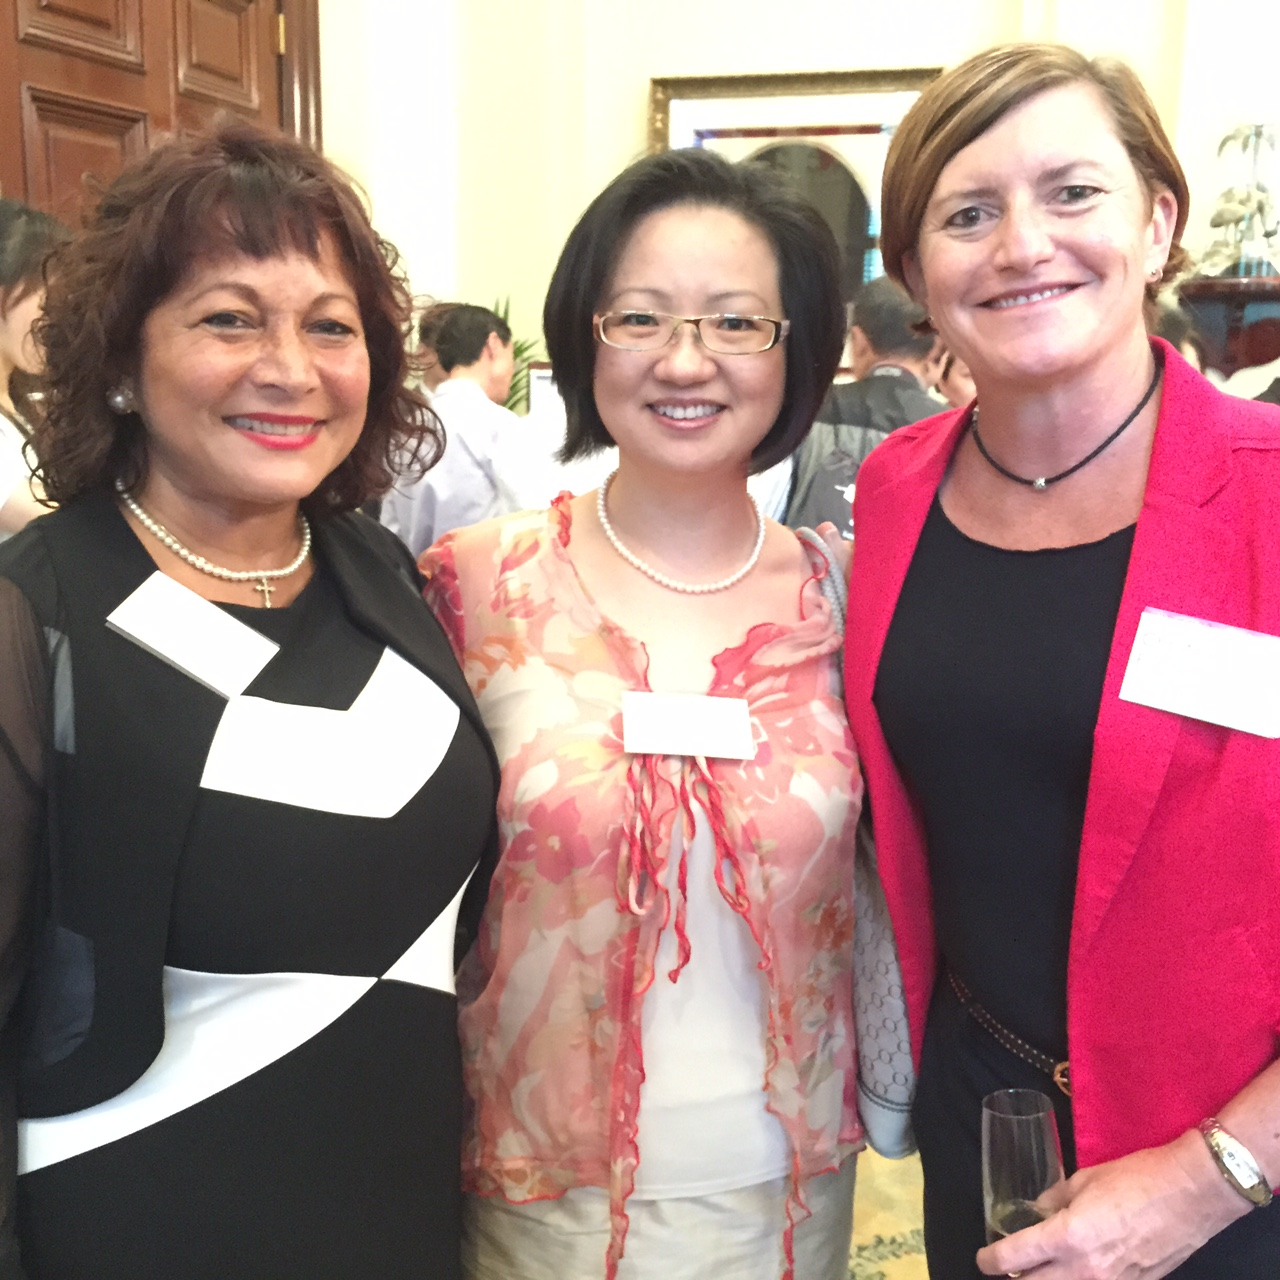 Christine Forster, Beverly Pinder-Mortimer and Victoria Qui @ CNY Reception 22-02-15